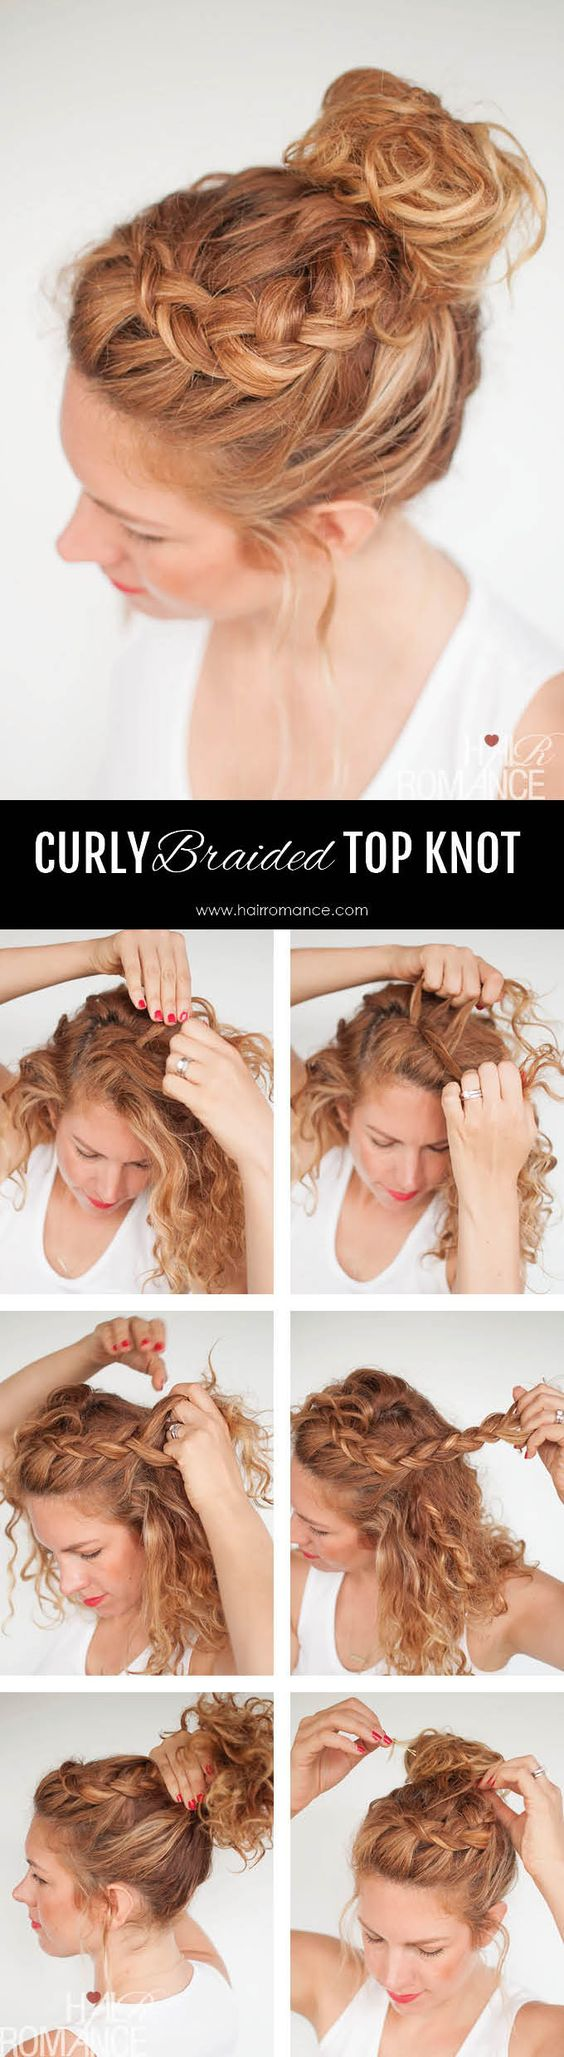 The Pinterest 100: Braided top knots (up 125%) are taking the spotlight from crown braids (down 60%).